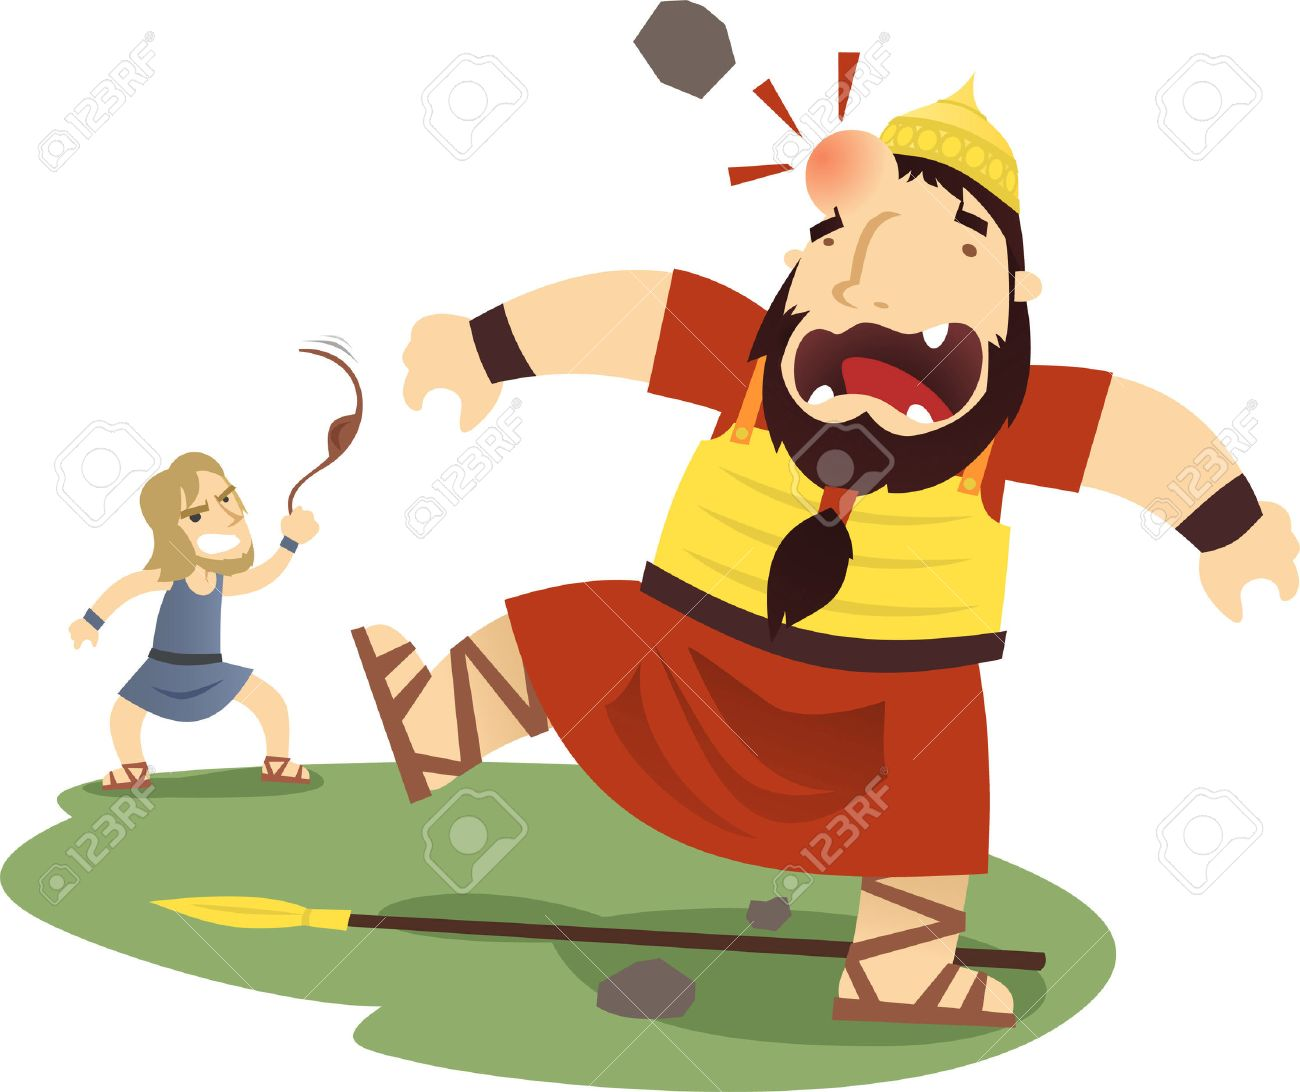 david and goliath cartoon illustration royalty free cliparts